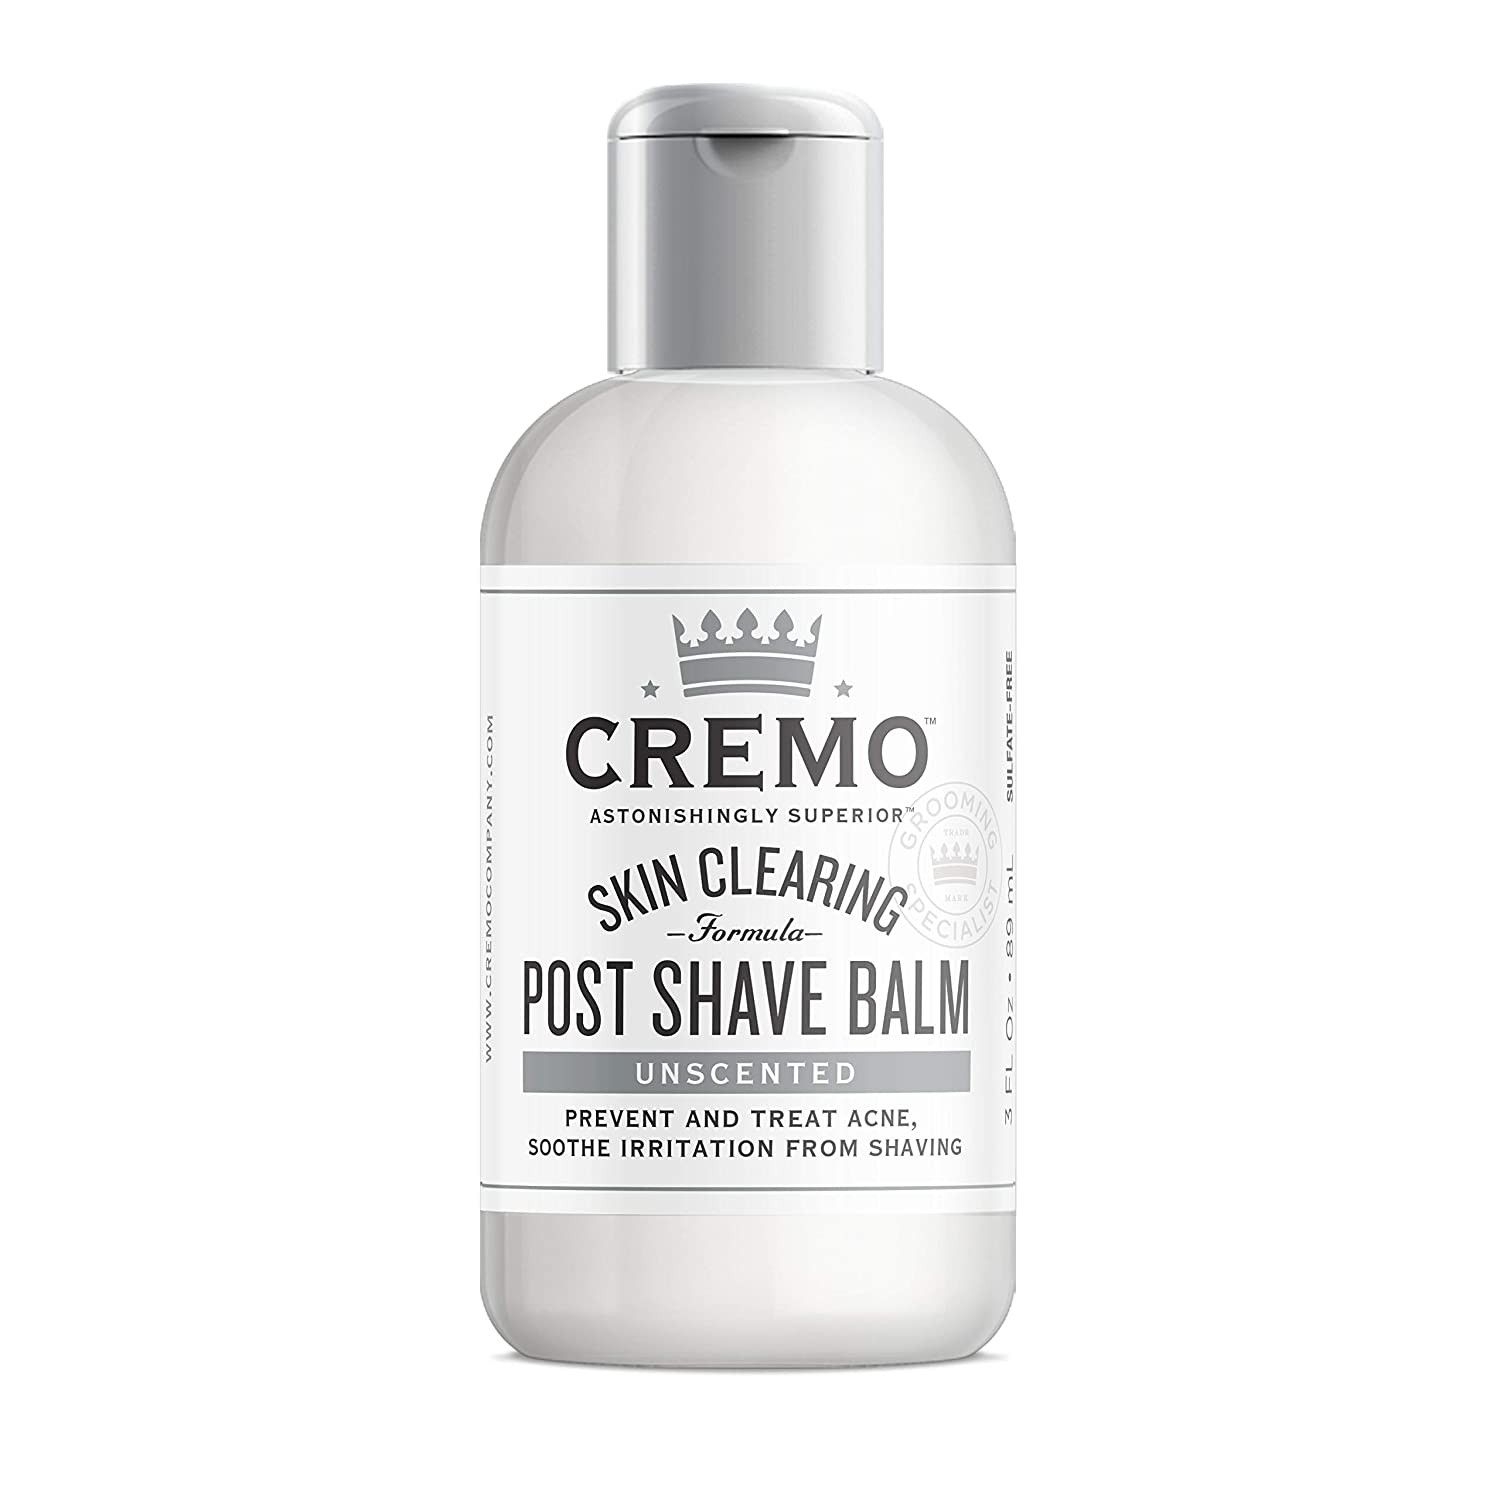 Cremo Unscented Post Shave Balm